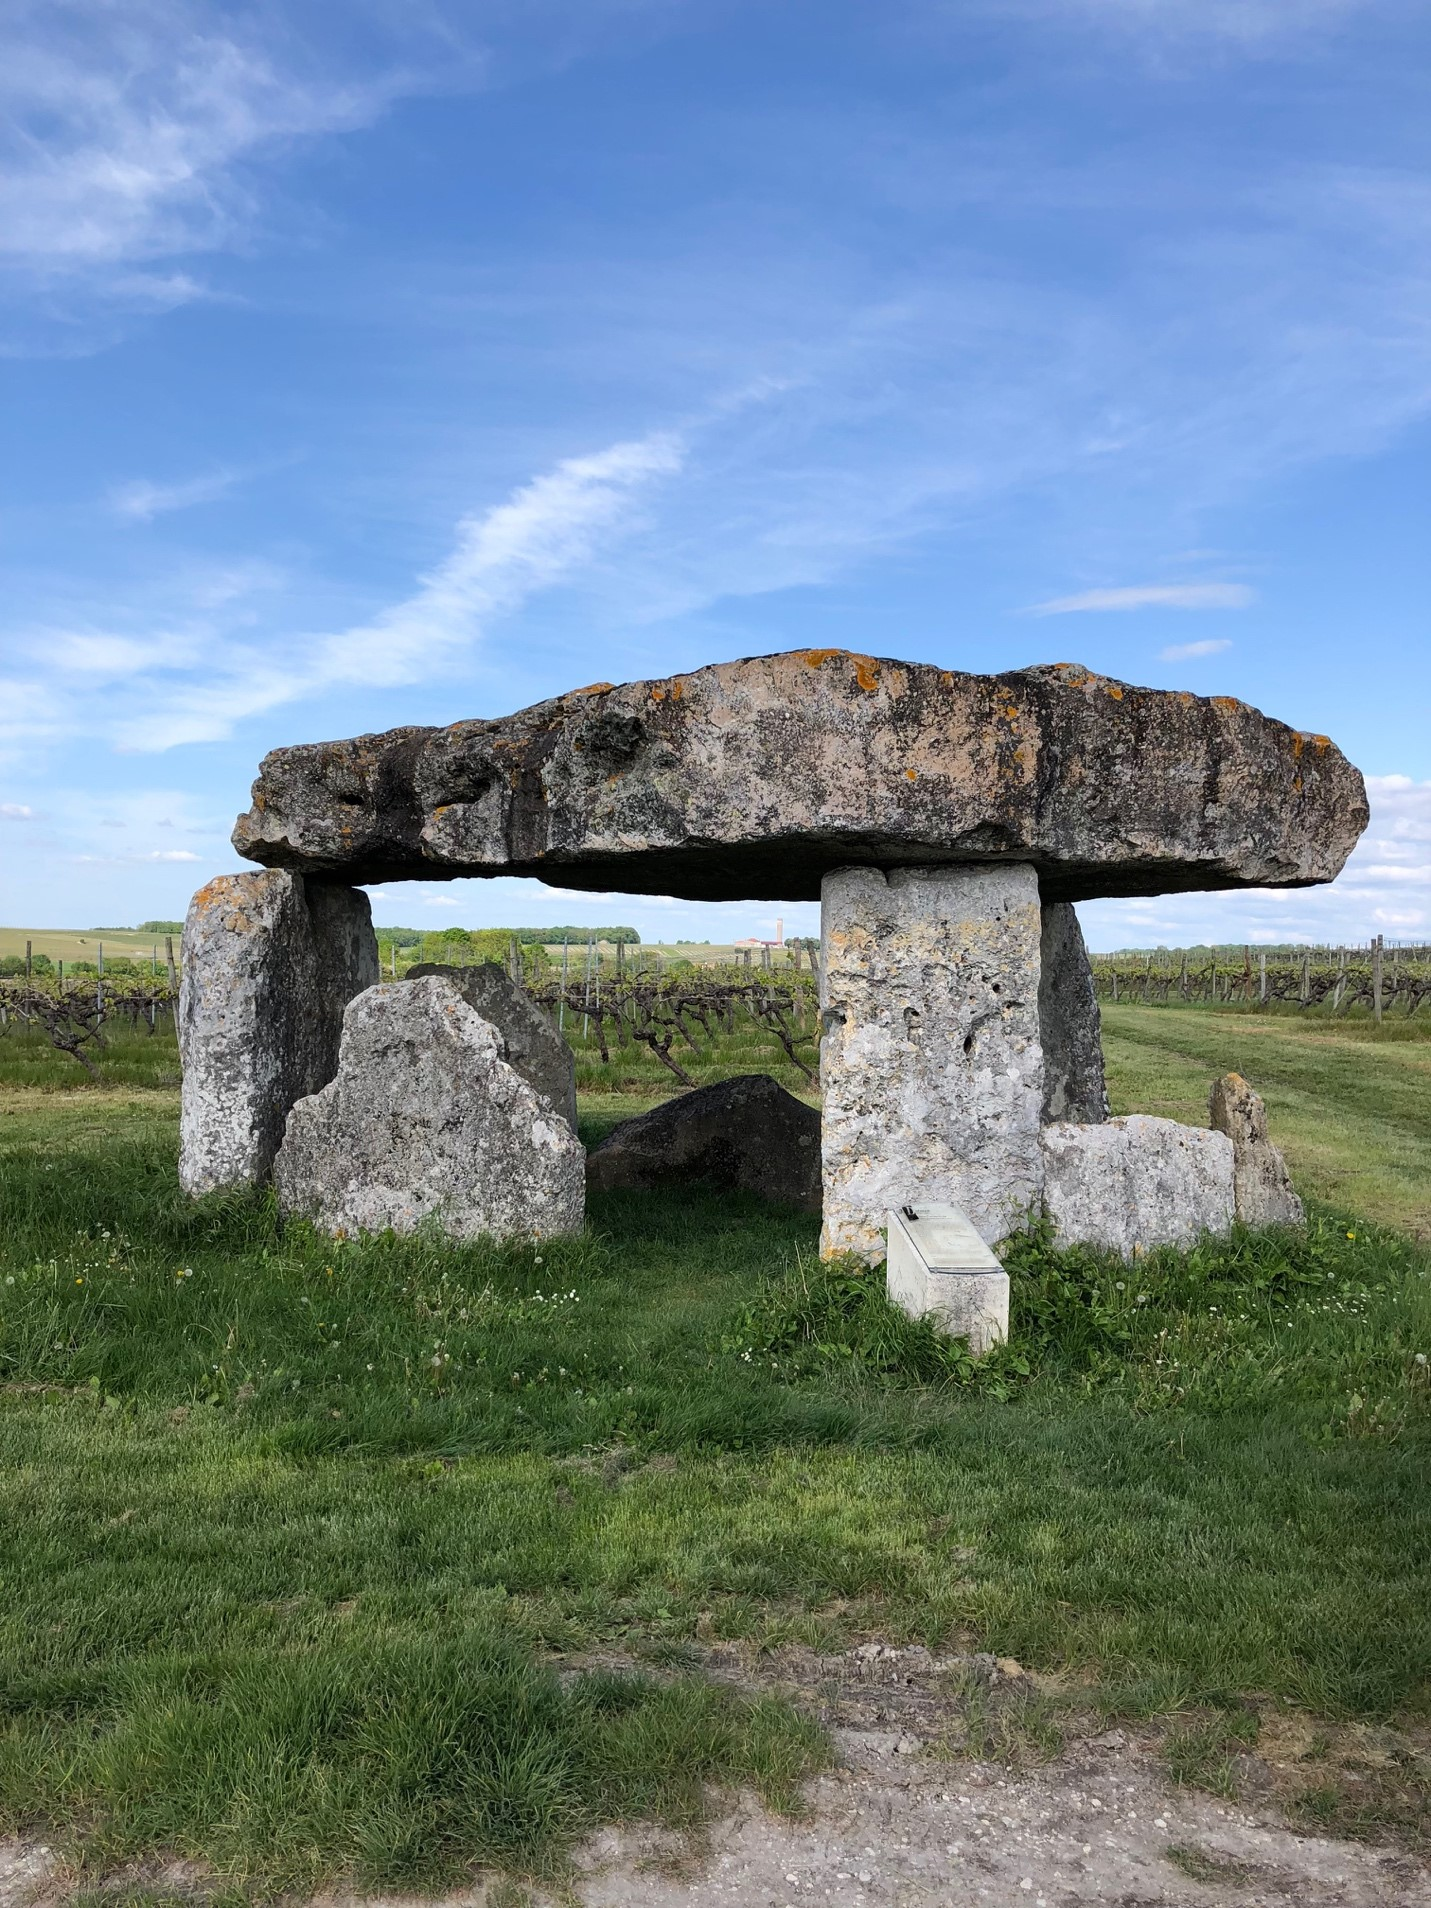 Rocks similar to Stonehenge in field